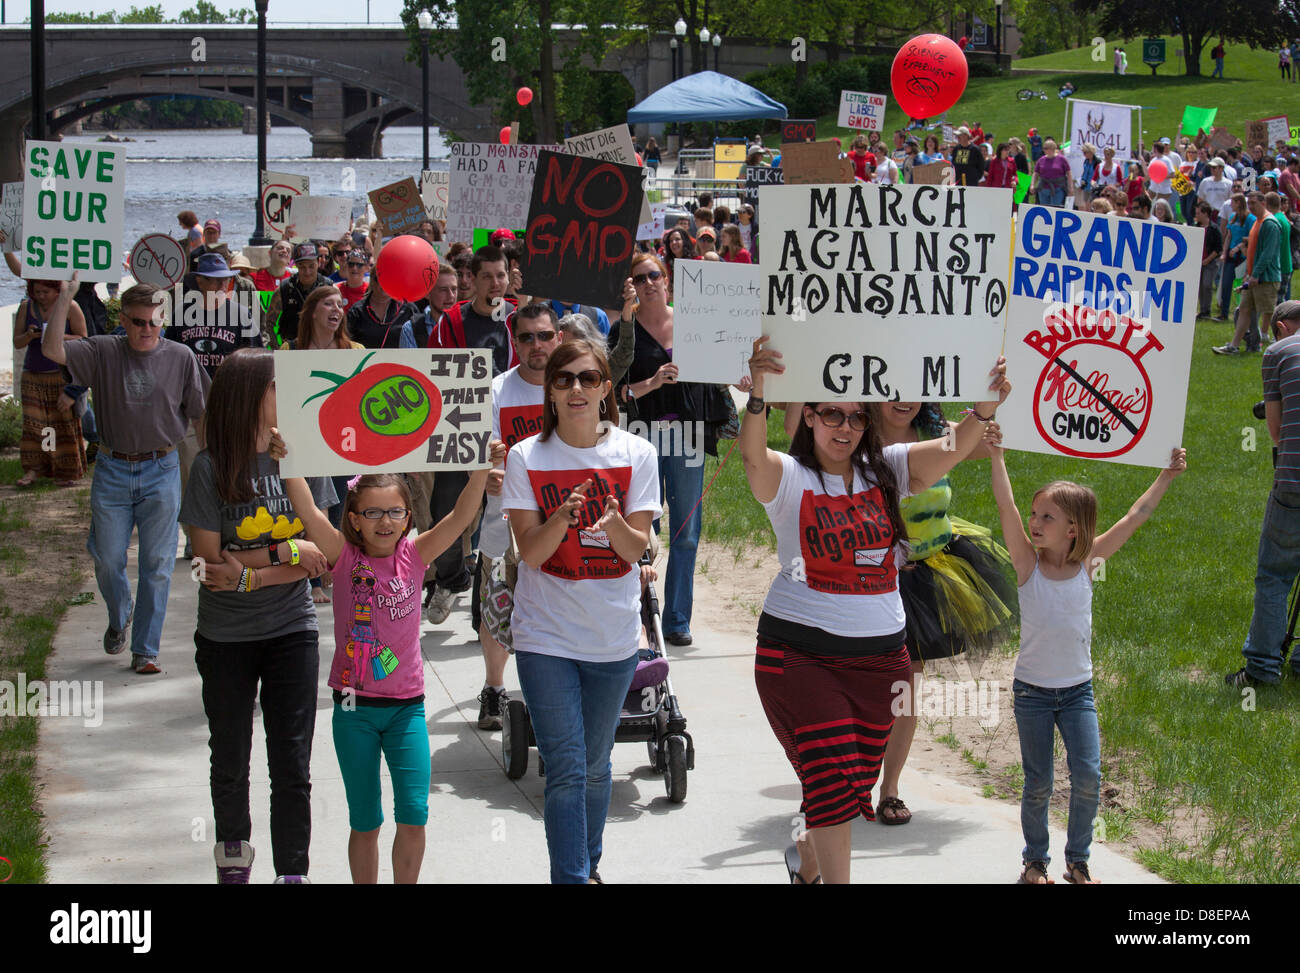 'March Against Monsanto' protests genetically modified foods - Stock Image